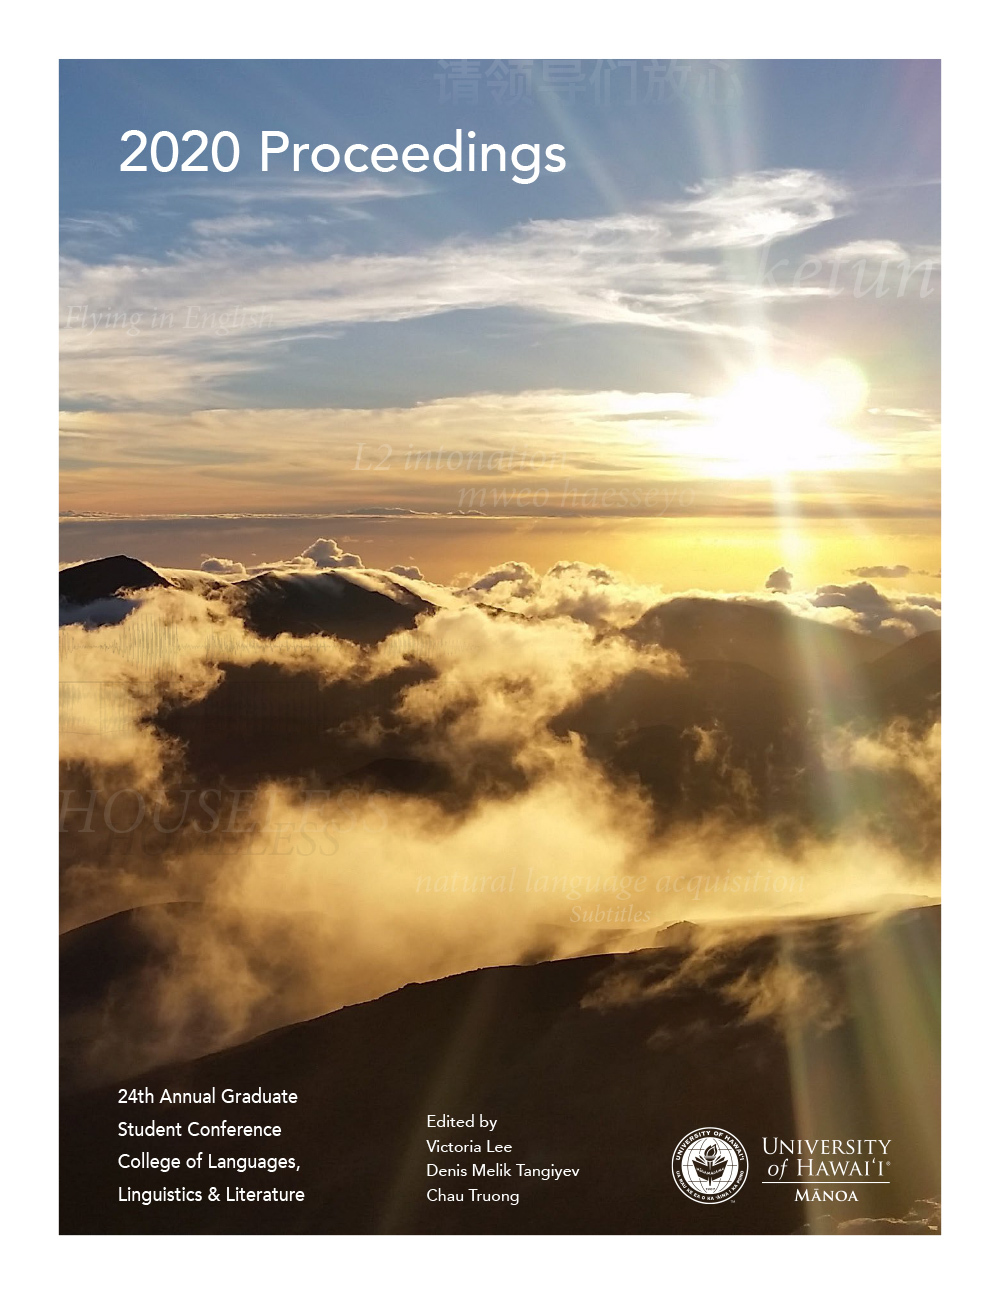 Proceedings 2020: Selected papers from the twenty-fourth college-wide conference for students in languages, linguistics & literature